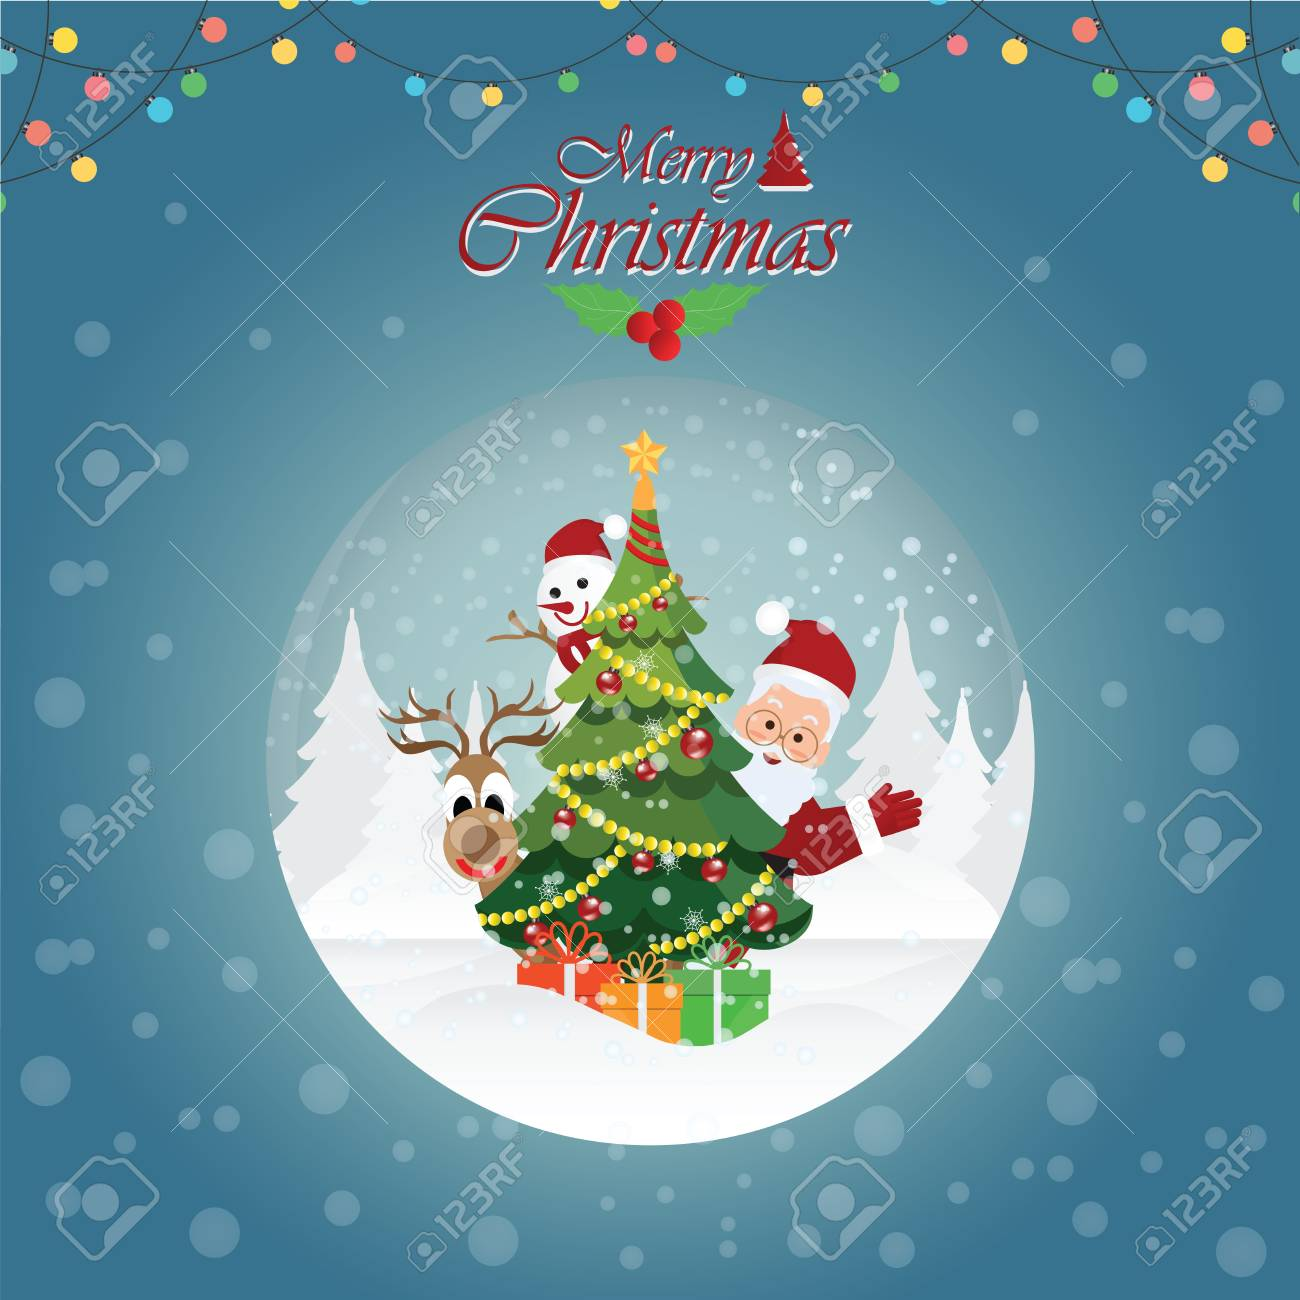 Merry Christmas Greeting Card With Christmas Santa Claus ,Snowman ...